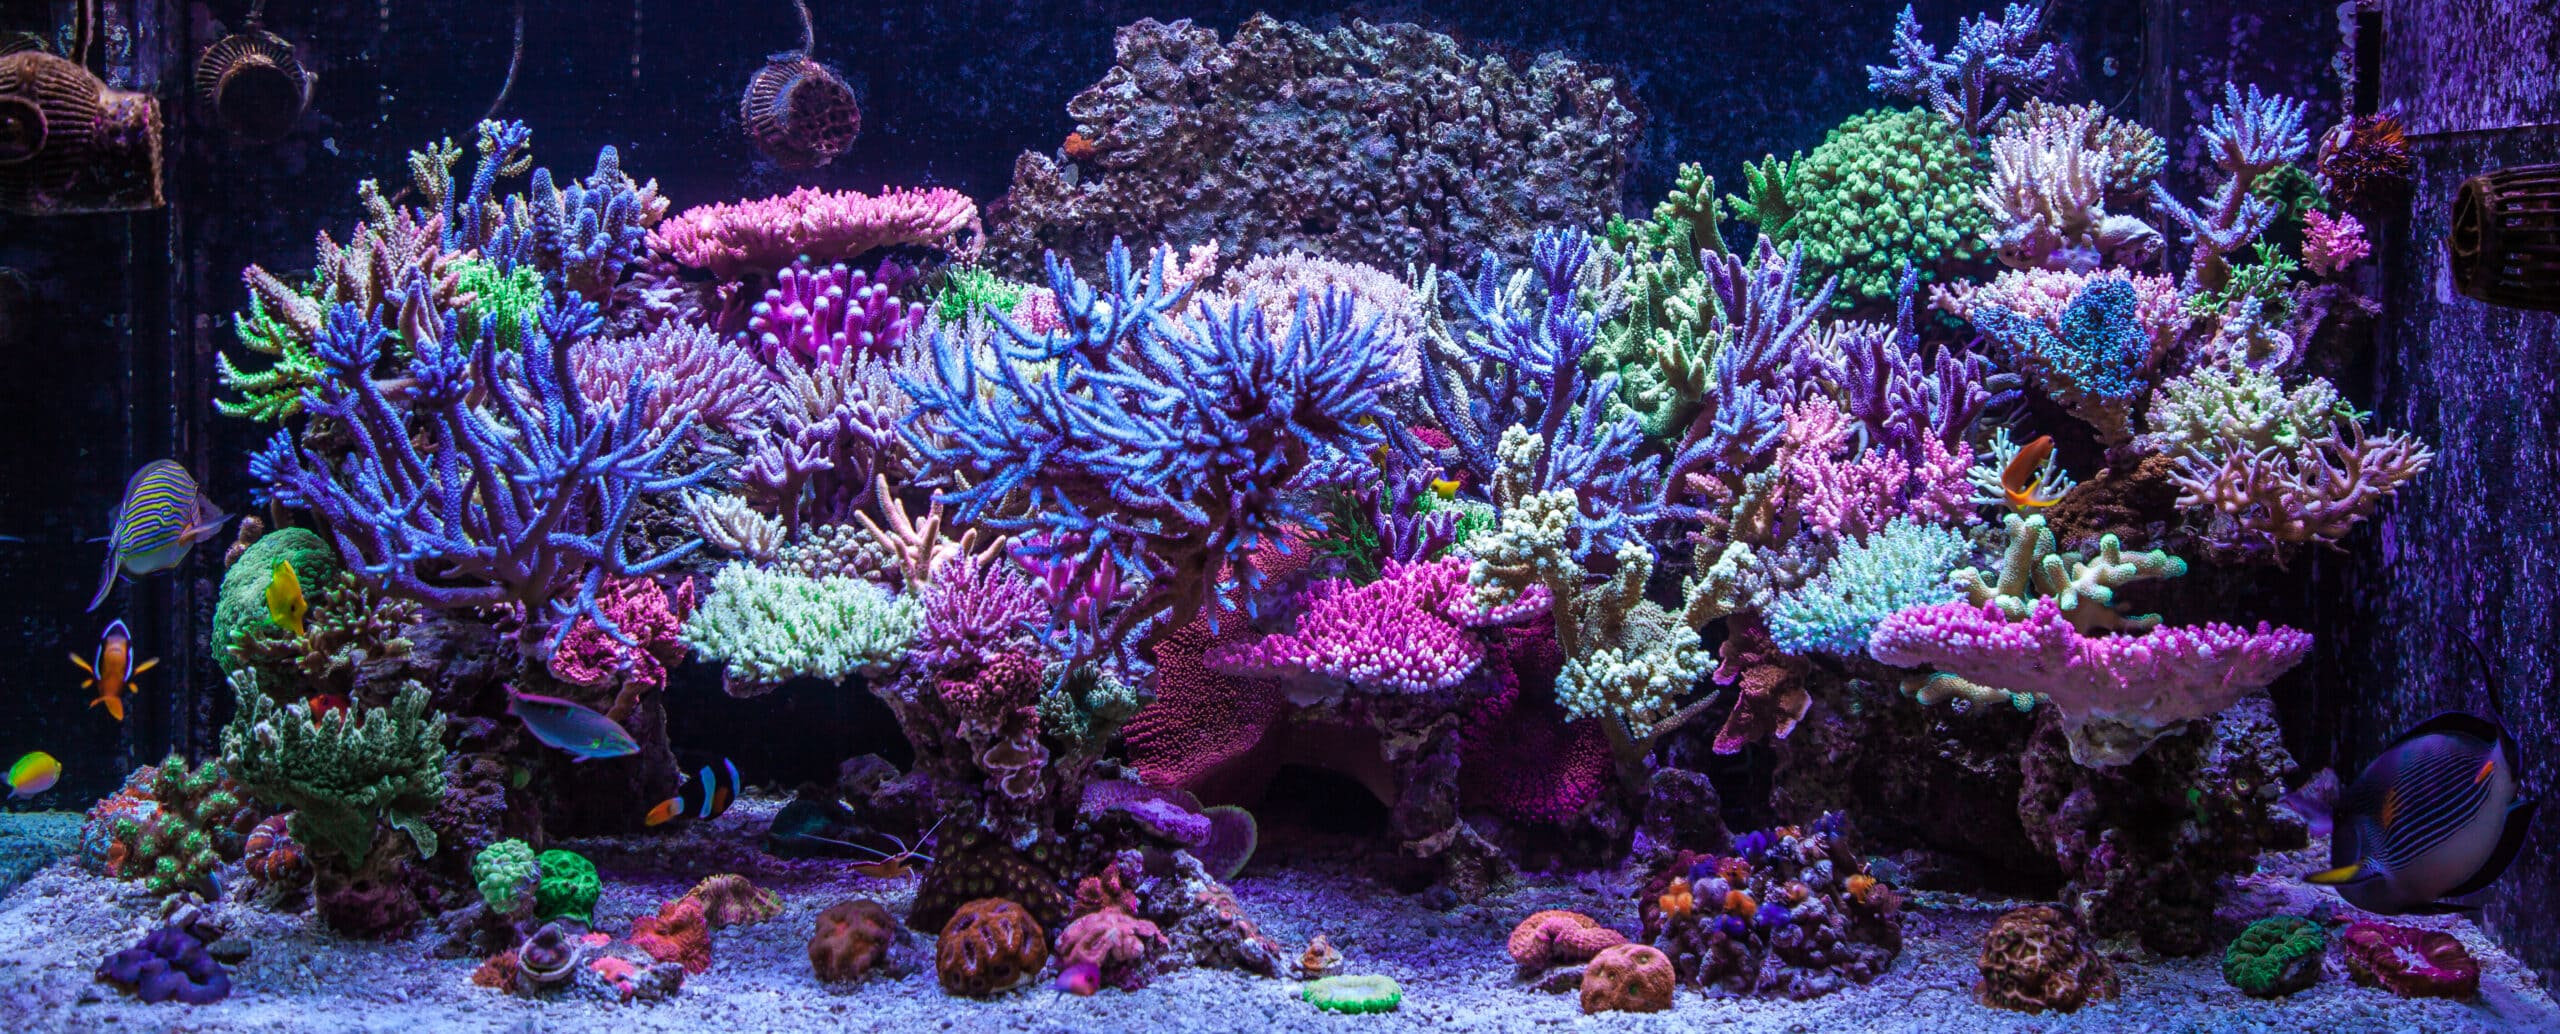 A beautiful Home Reef Aquarium